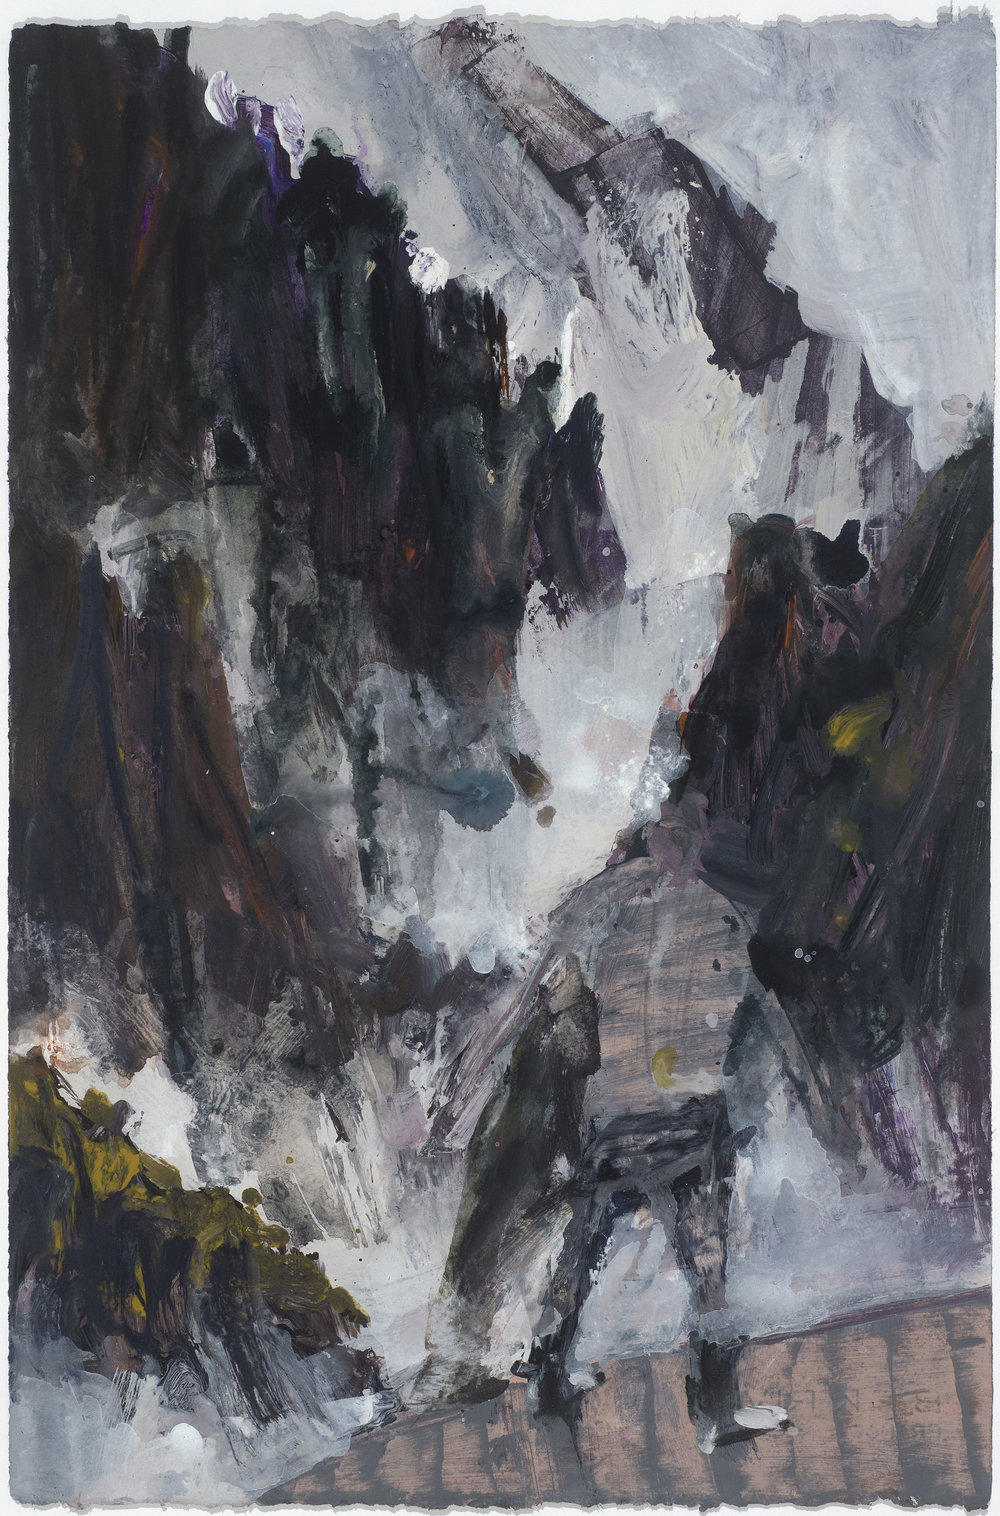 Misty mountain study 10/16  霧裡山考察10/16   Euan Macleod , 2016  Acrylic on paper, 58 x 38 cm, HKD 14,800 framed